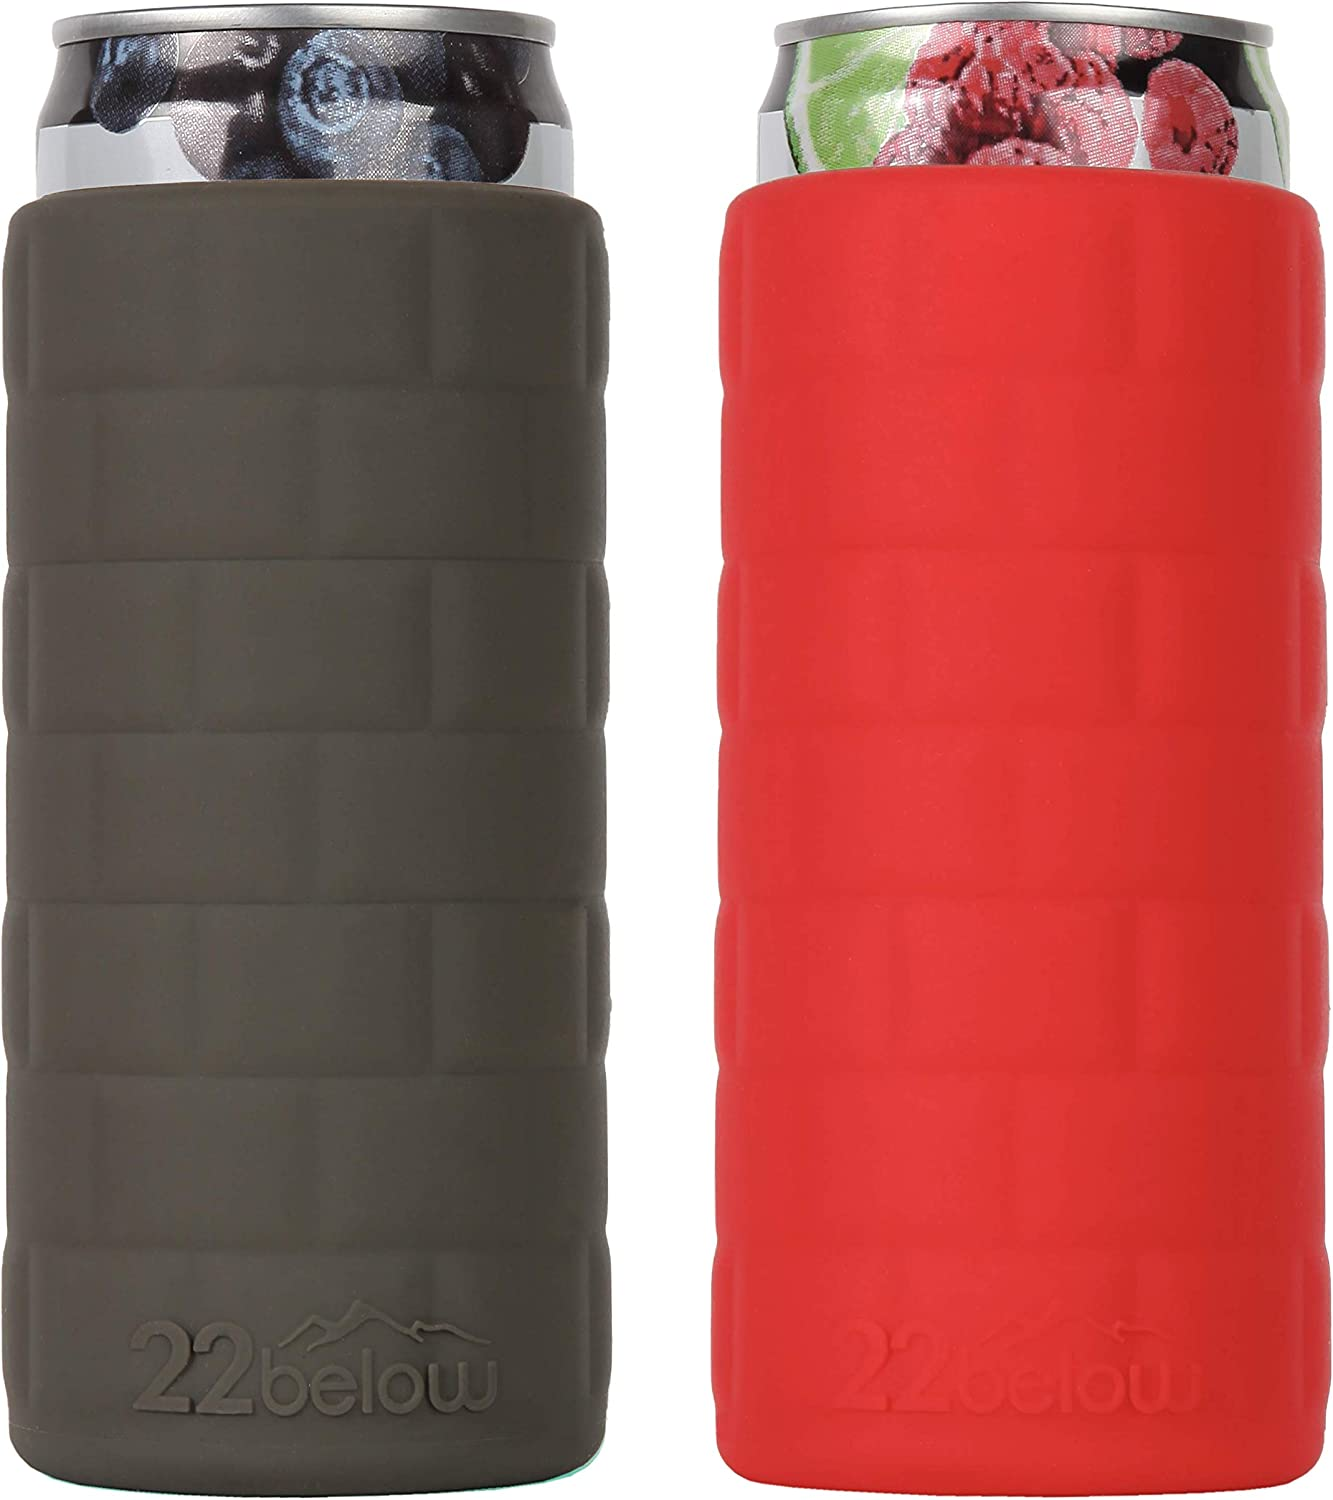 22below - Slim Can Flexible Soft Touch Silicone Cooler Two Pack - Olive Green & Red